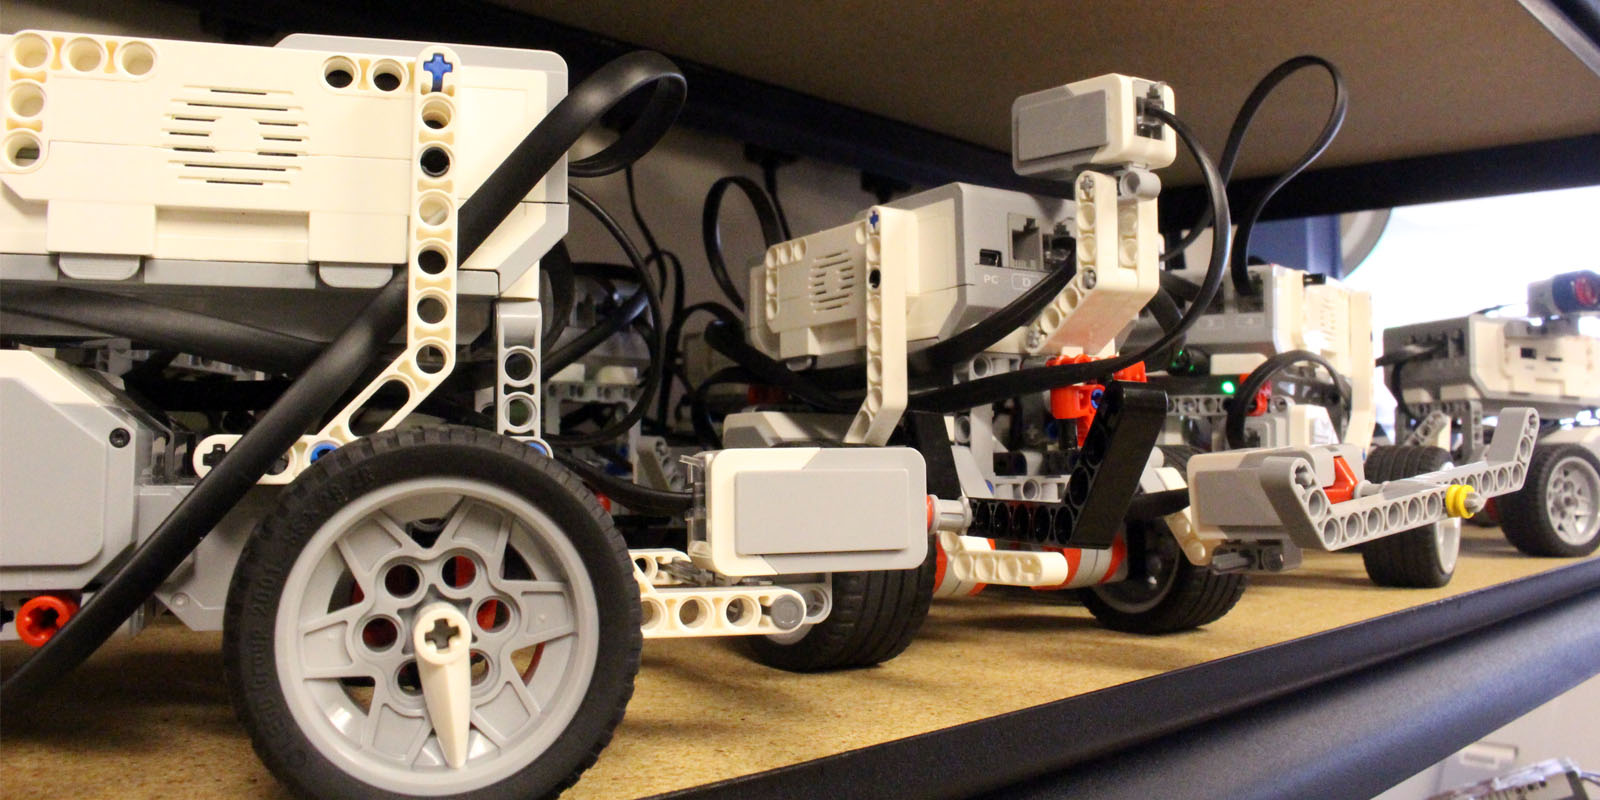 Latest Projects Based On Stepper Motor Electronics Electrical Mini Steeper Control Using 2 Land Survey Robot